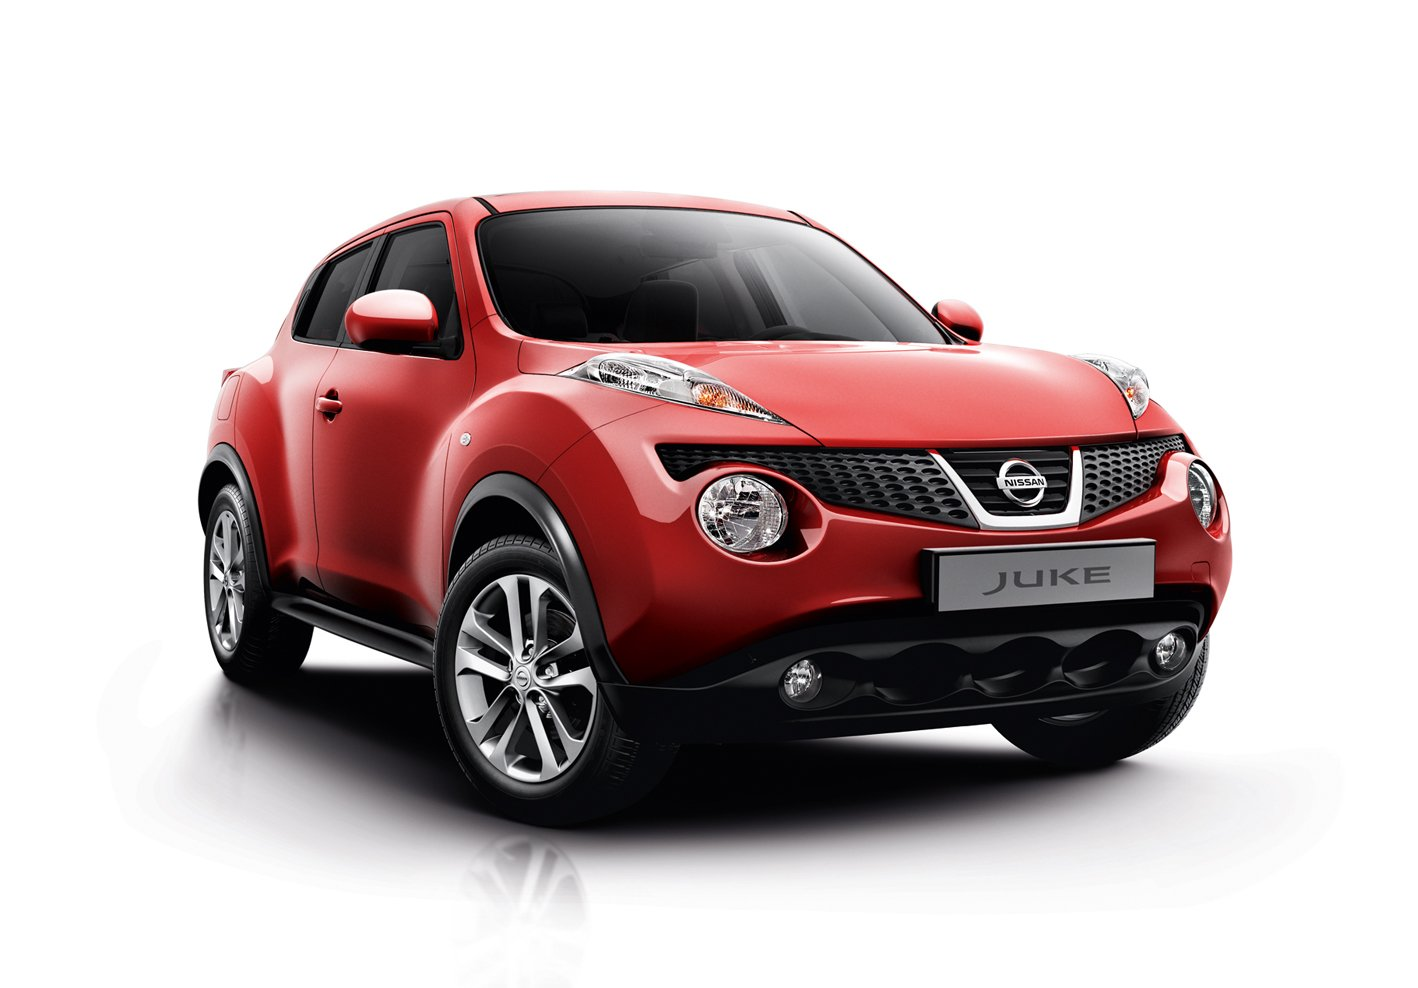 nissan juke leasing angebote ohne anzahlung. Black Bedroom Furniture Sets. Home Design Ideas